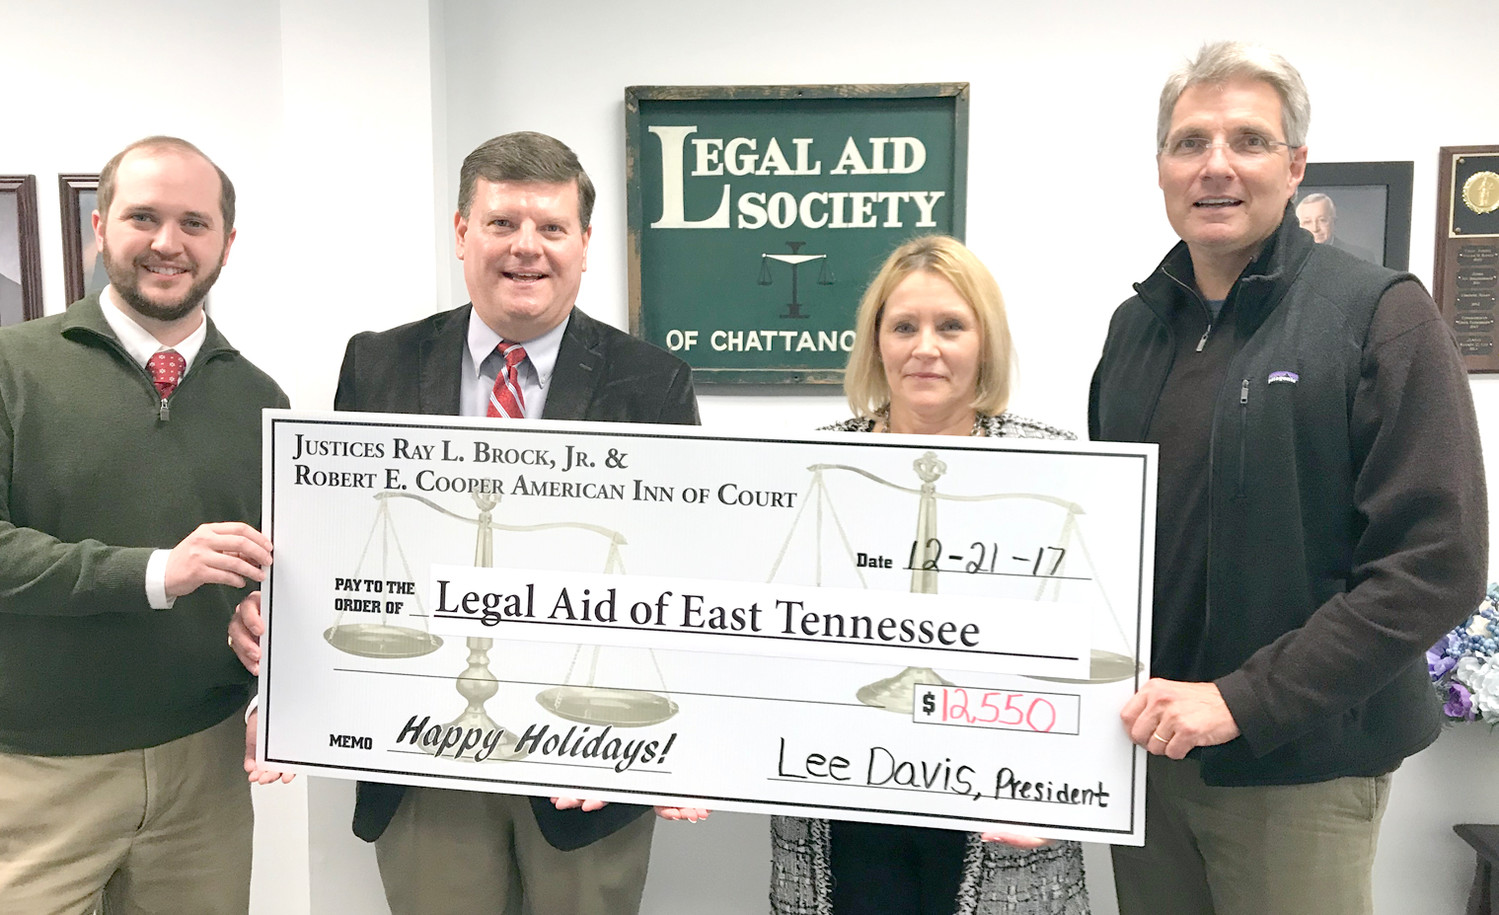 PARTICIPATING IN A recent check presentation were, from left, Charlie McDaniel, director of Operations for Legal Aid of Tennessee; Inn of Court Executive Committee member and Past President Ron Powers; Legal Aid Executive Director Sheri Fox; and Inn of Court President Lee Davis.